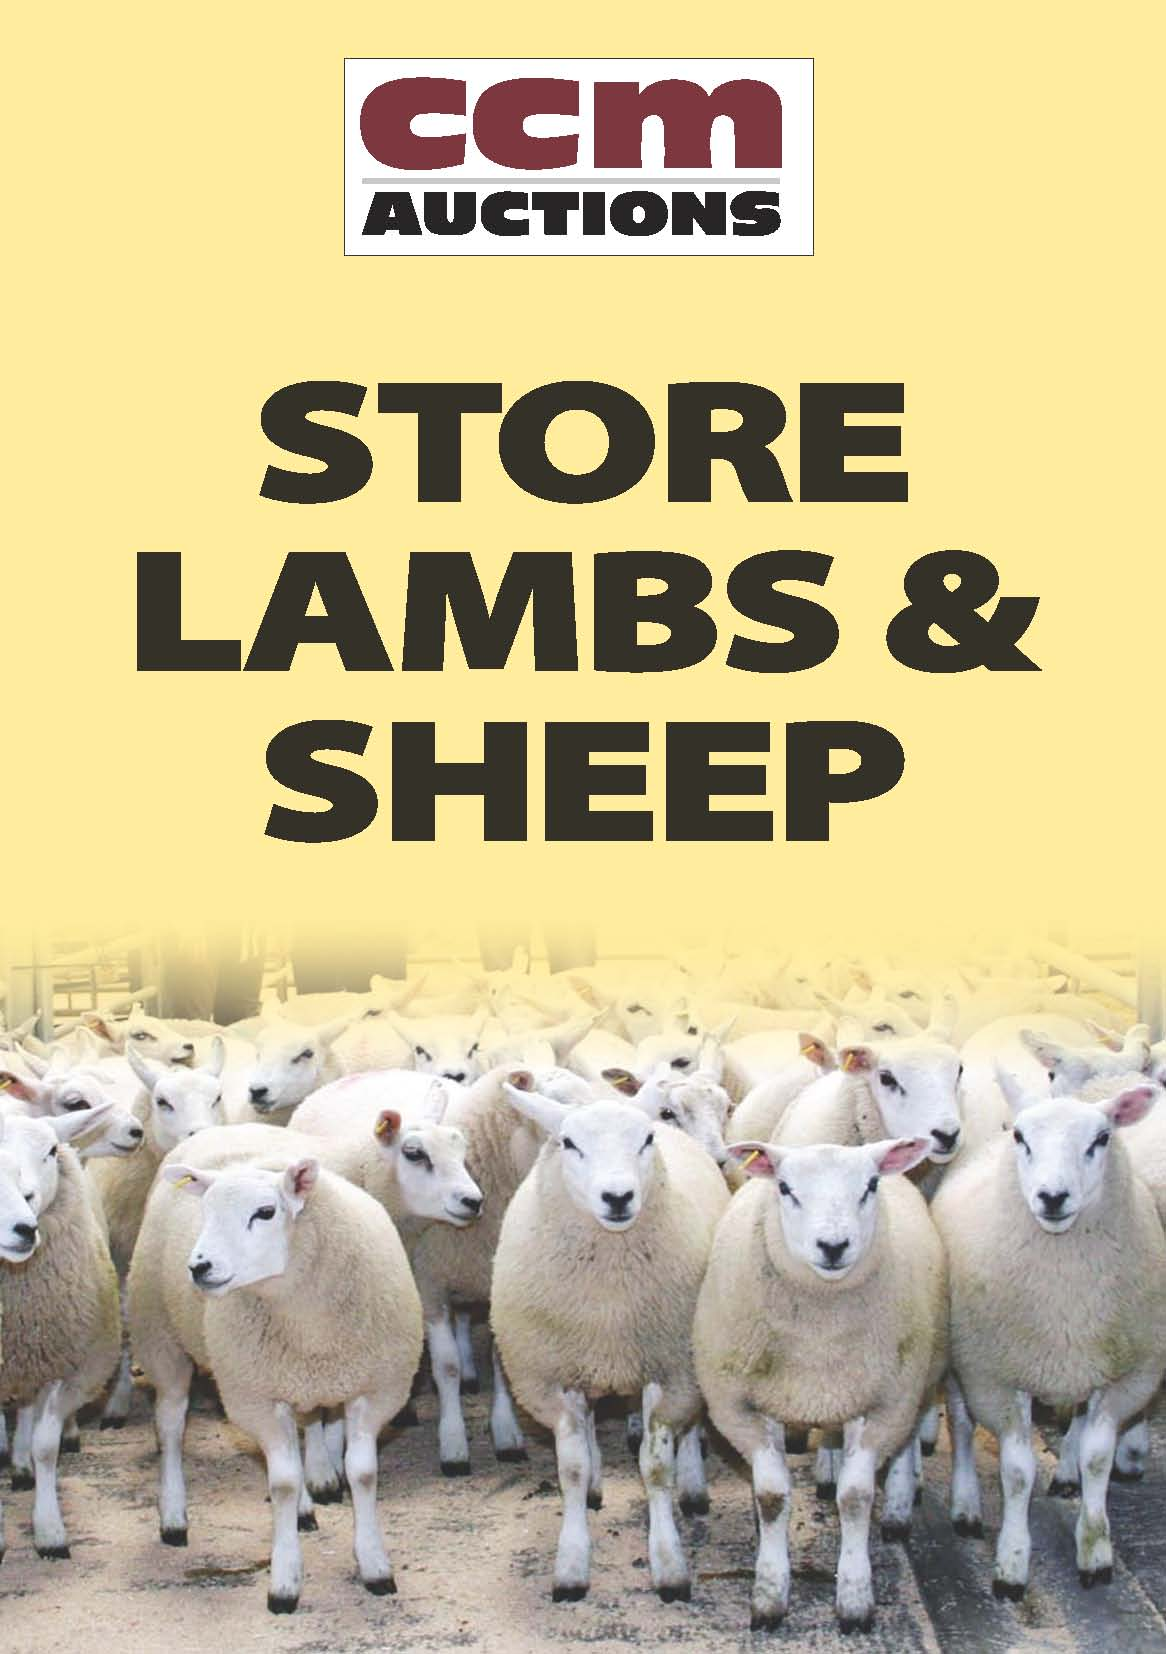 STORE LAMBS & BREEDING SHEEP - WEDNESDAY 22ND FEBRUARY 2017